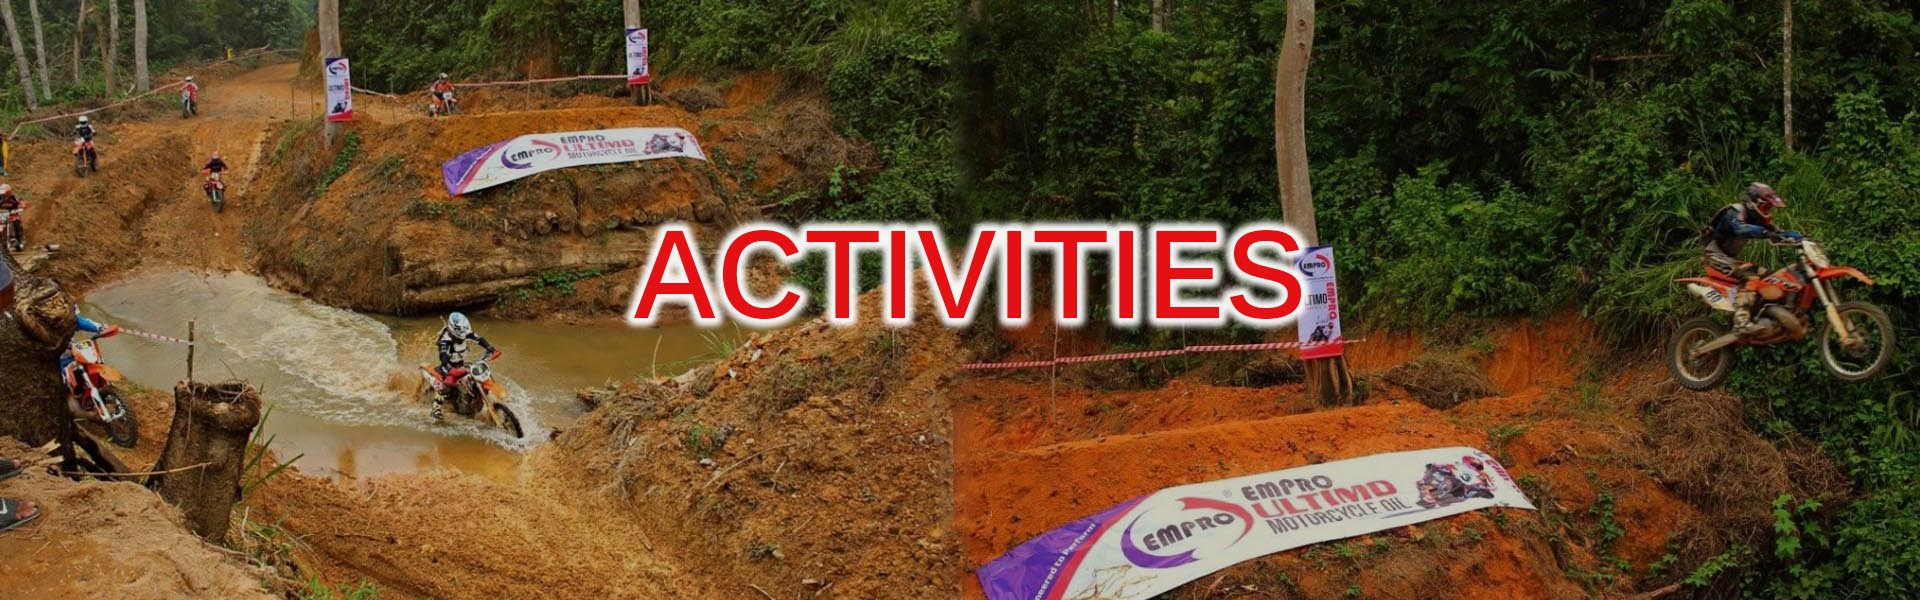 activites background12